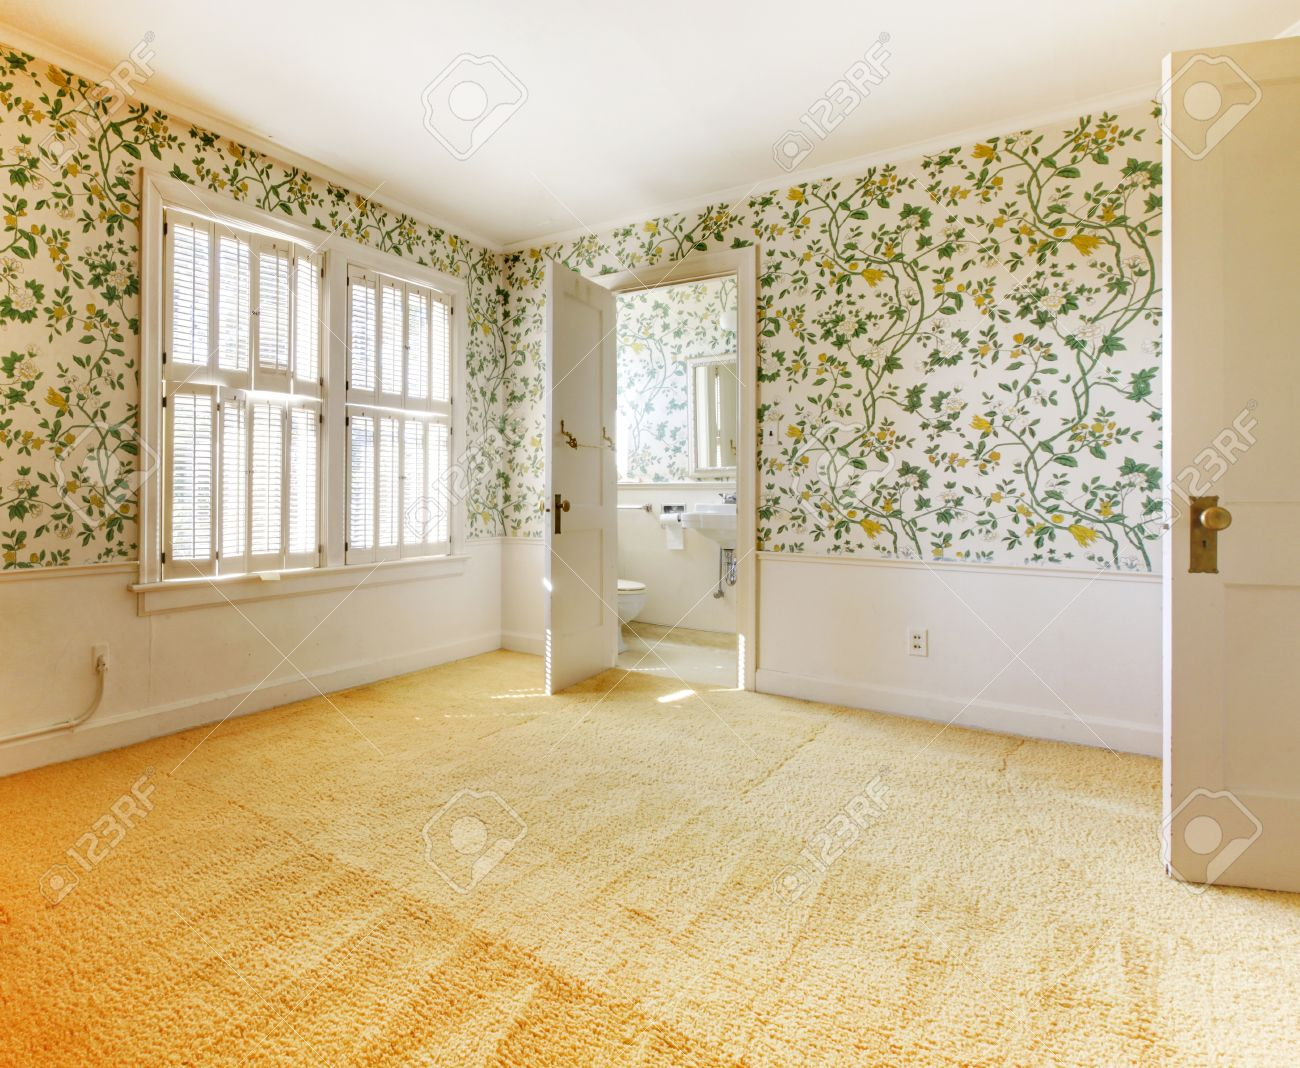 House With Wallpaper